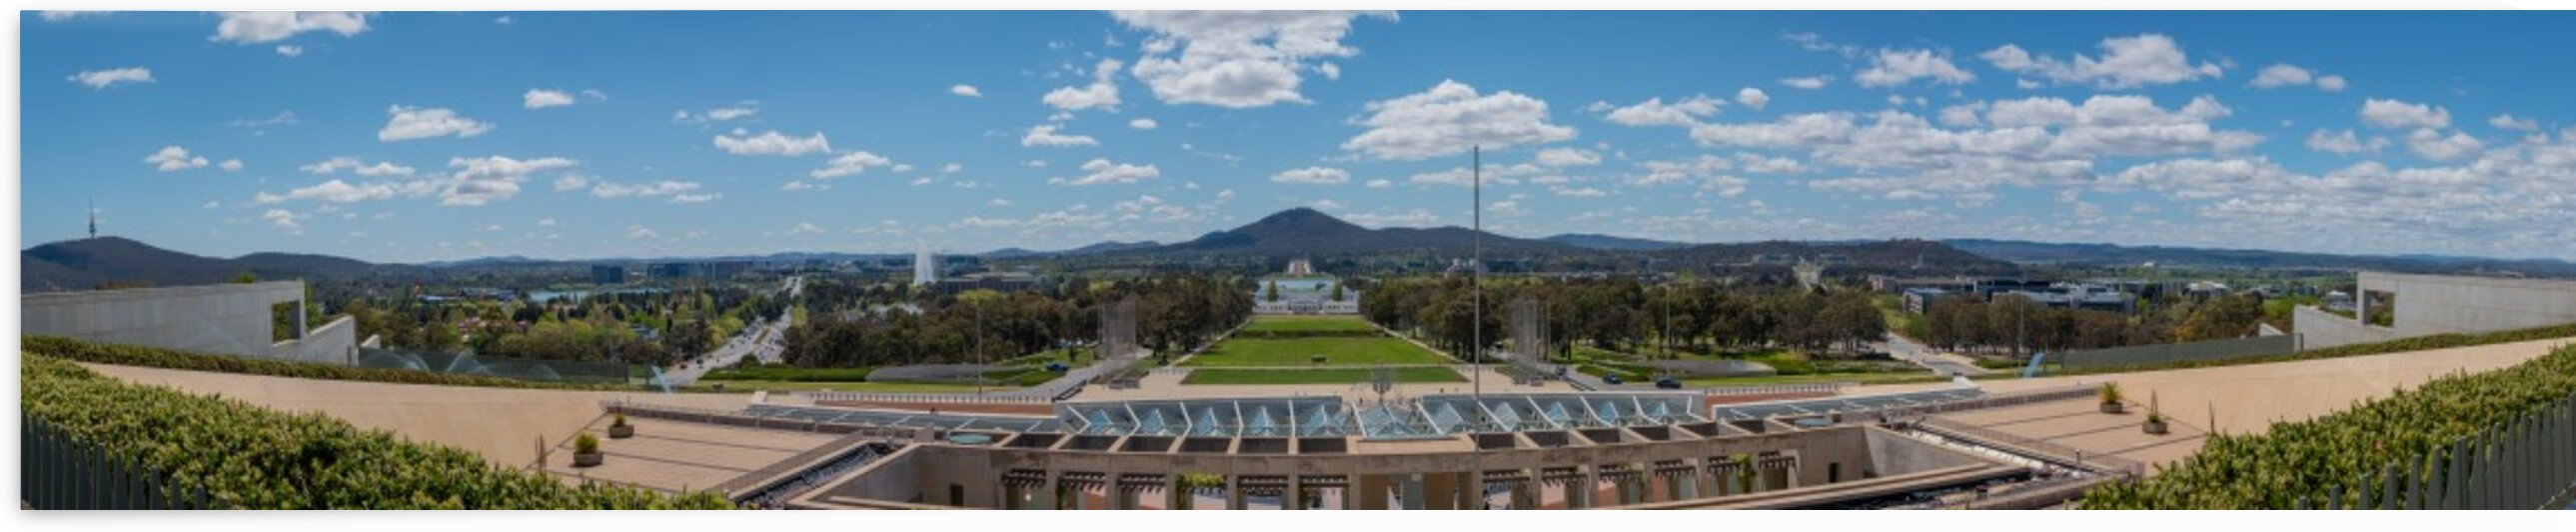 Canberra City Panorama from Parliament House roof by Grant Cookson